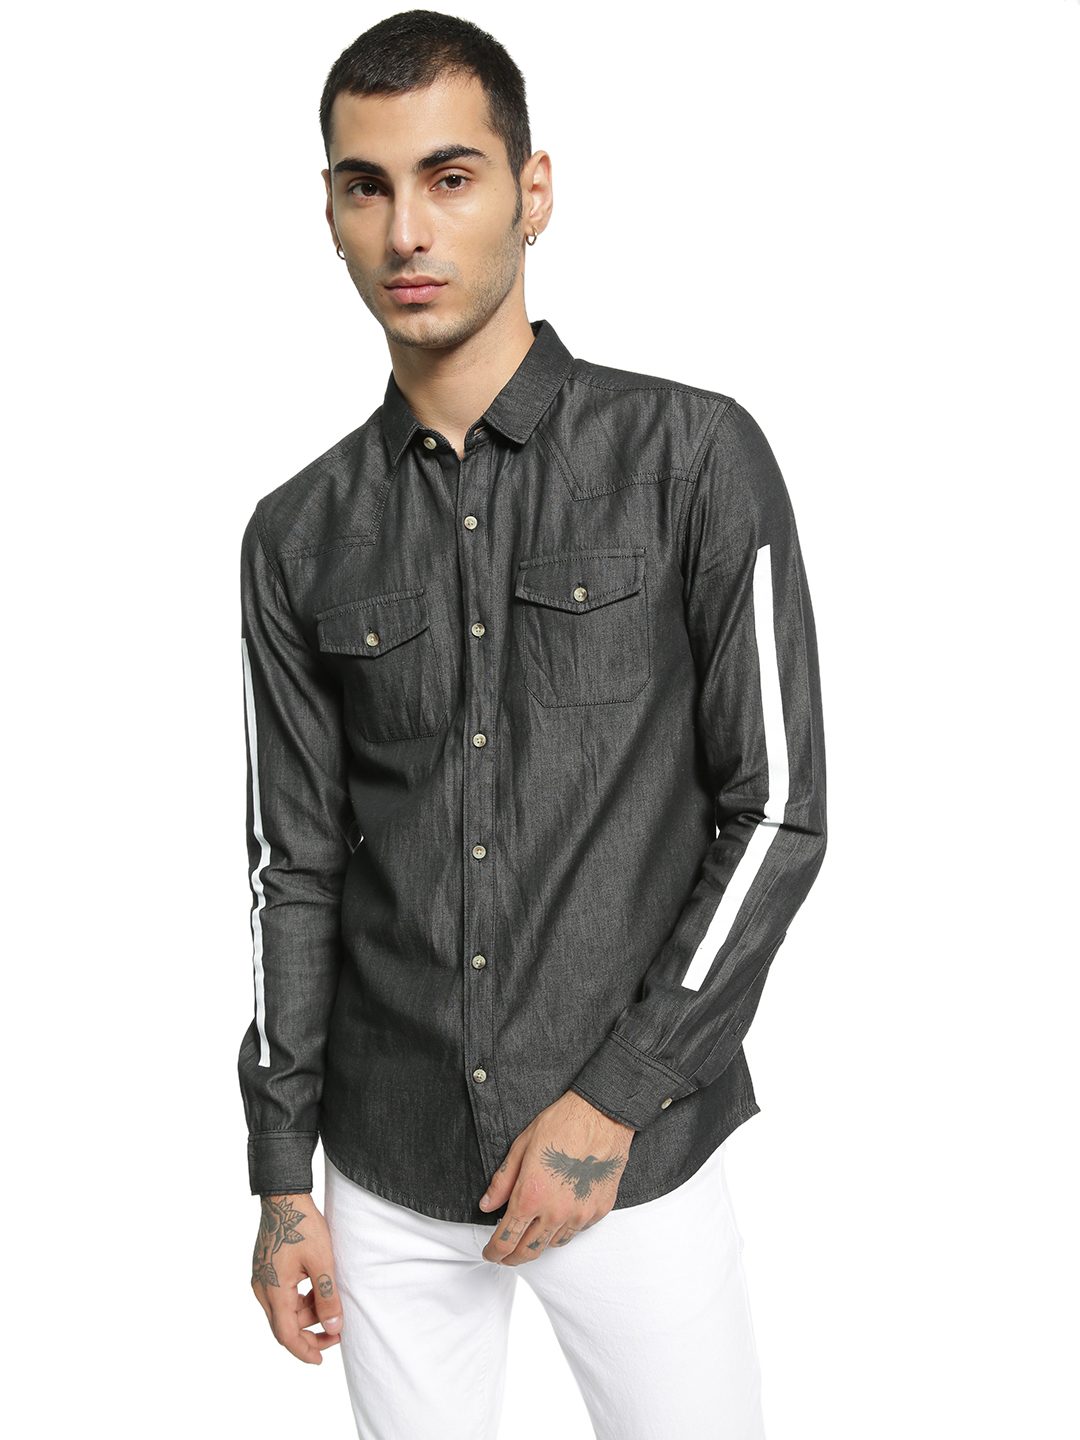 TRUE RUG Black Contrast Stripe Denim Shirt 1